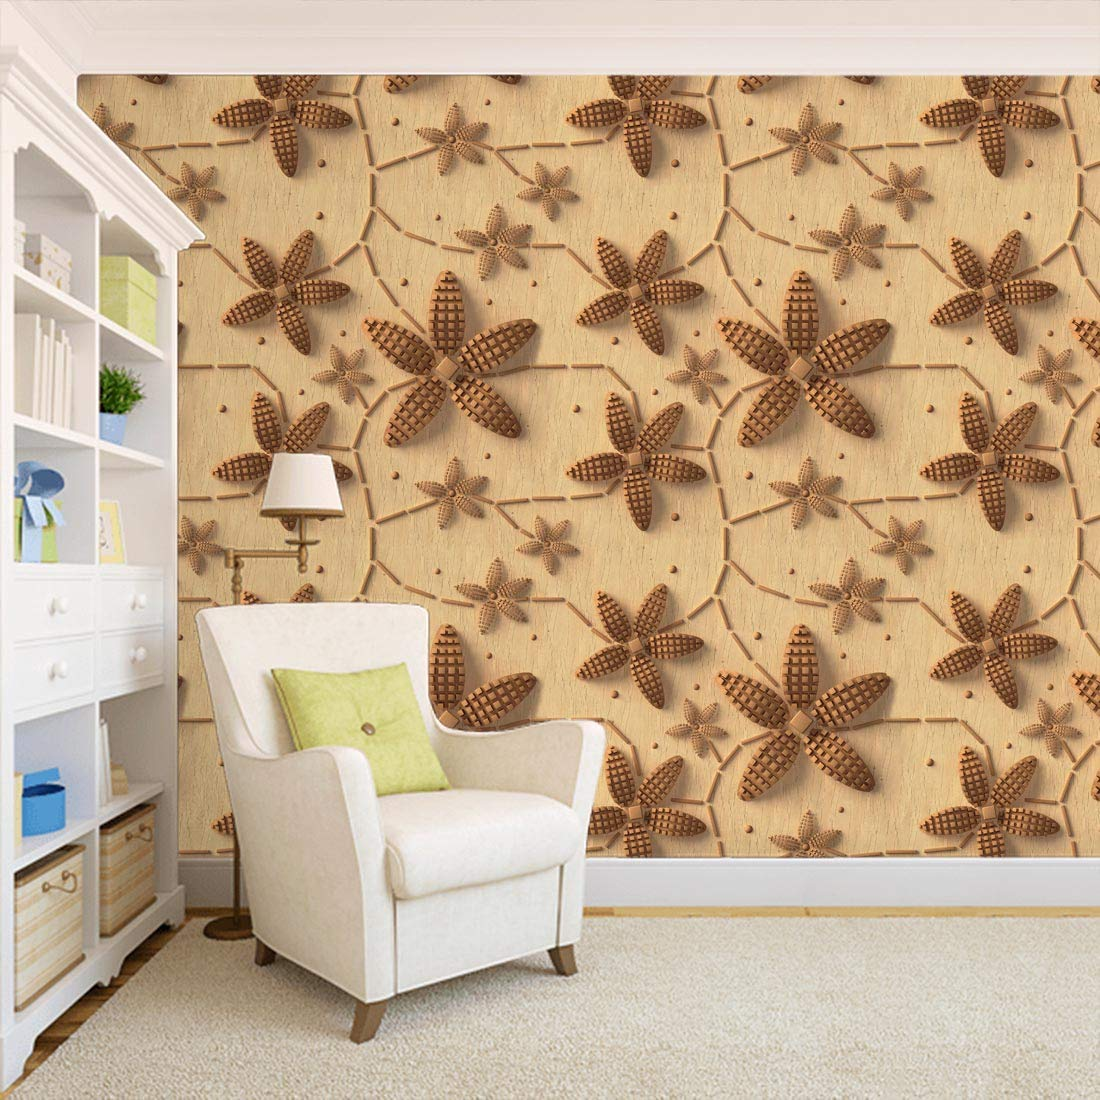 100yellow 3D Design Printed Peel And Stick Self Adhesive Wall Paper/Wall Sticker For Wall Decor-Ideal For Office- 26.7 Sqft (B07B9HJV8X) Amazon Price History, Amazon Price Tracker